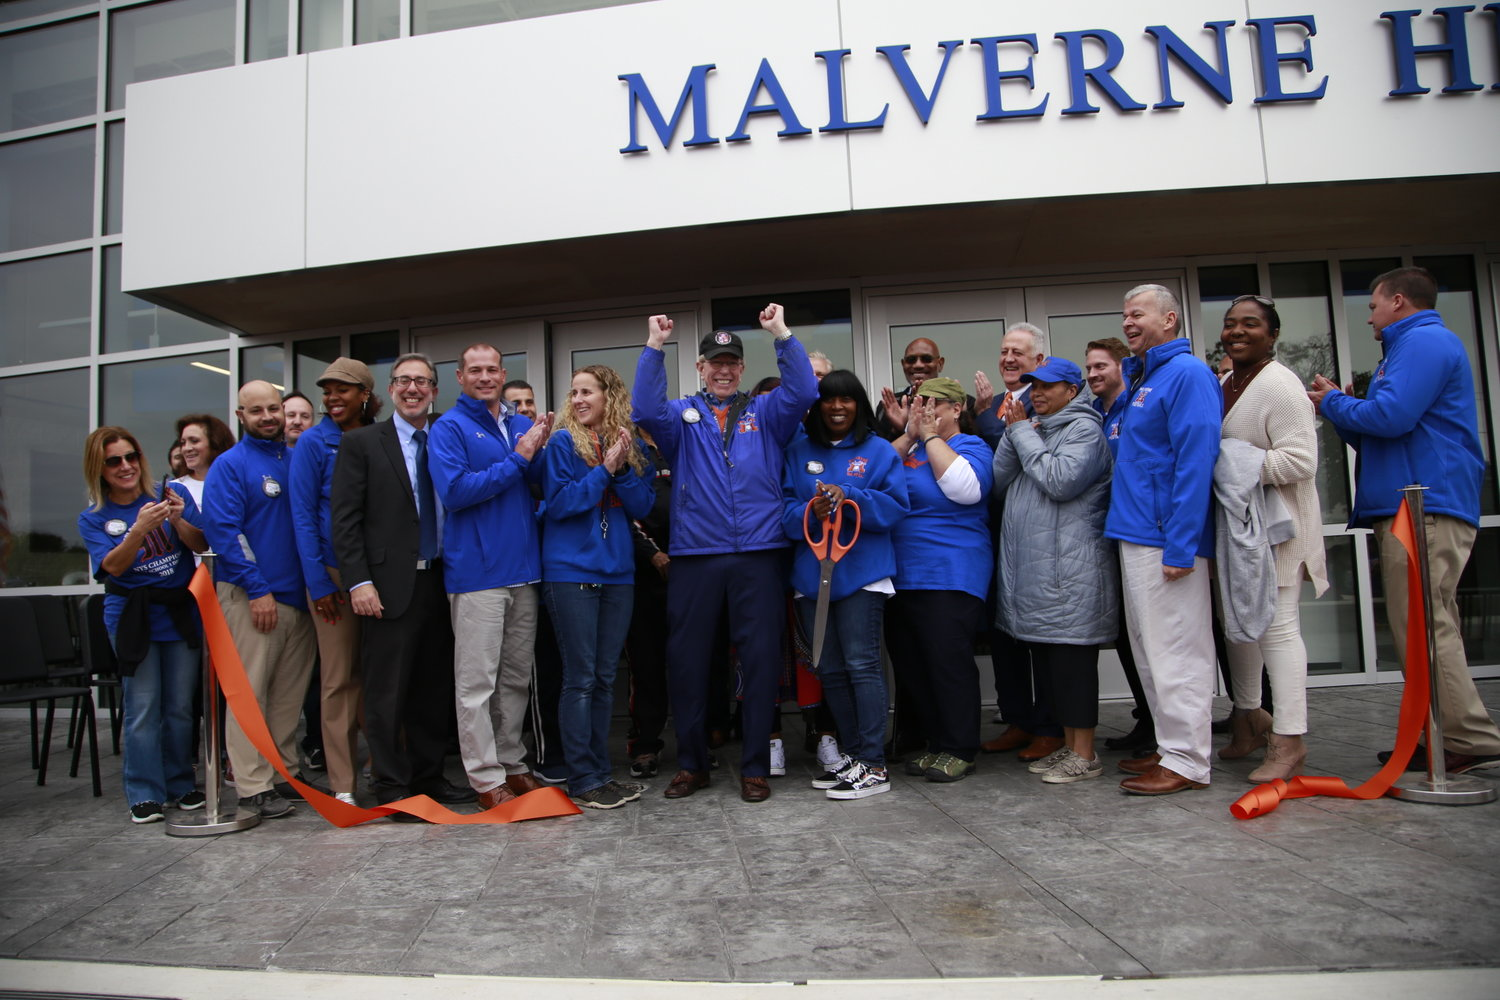 The Malverne School District held a ribbon-cutting ceremony to unveil the high school's new performing arts center during Homecoming last Saturday.